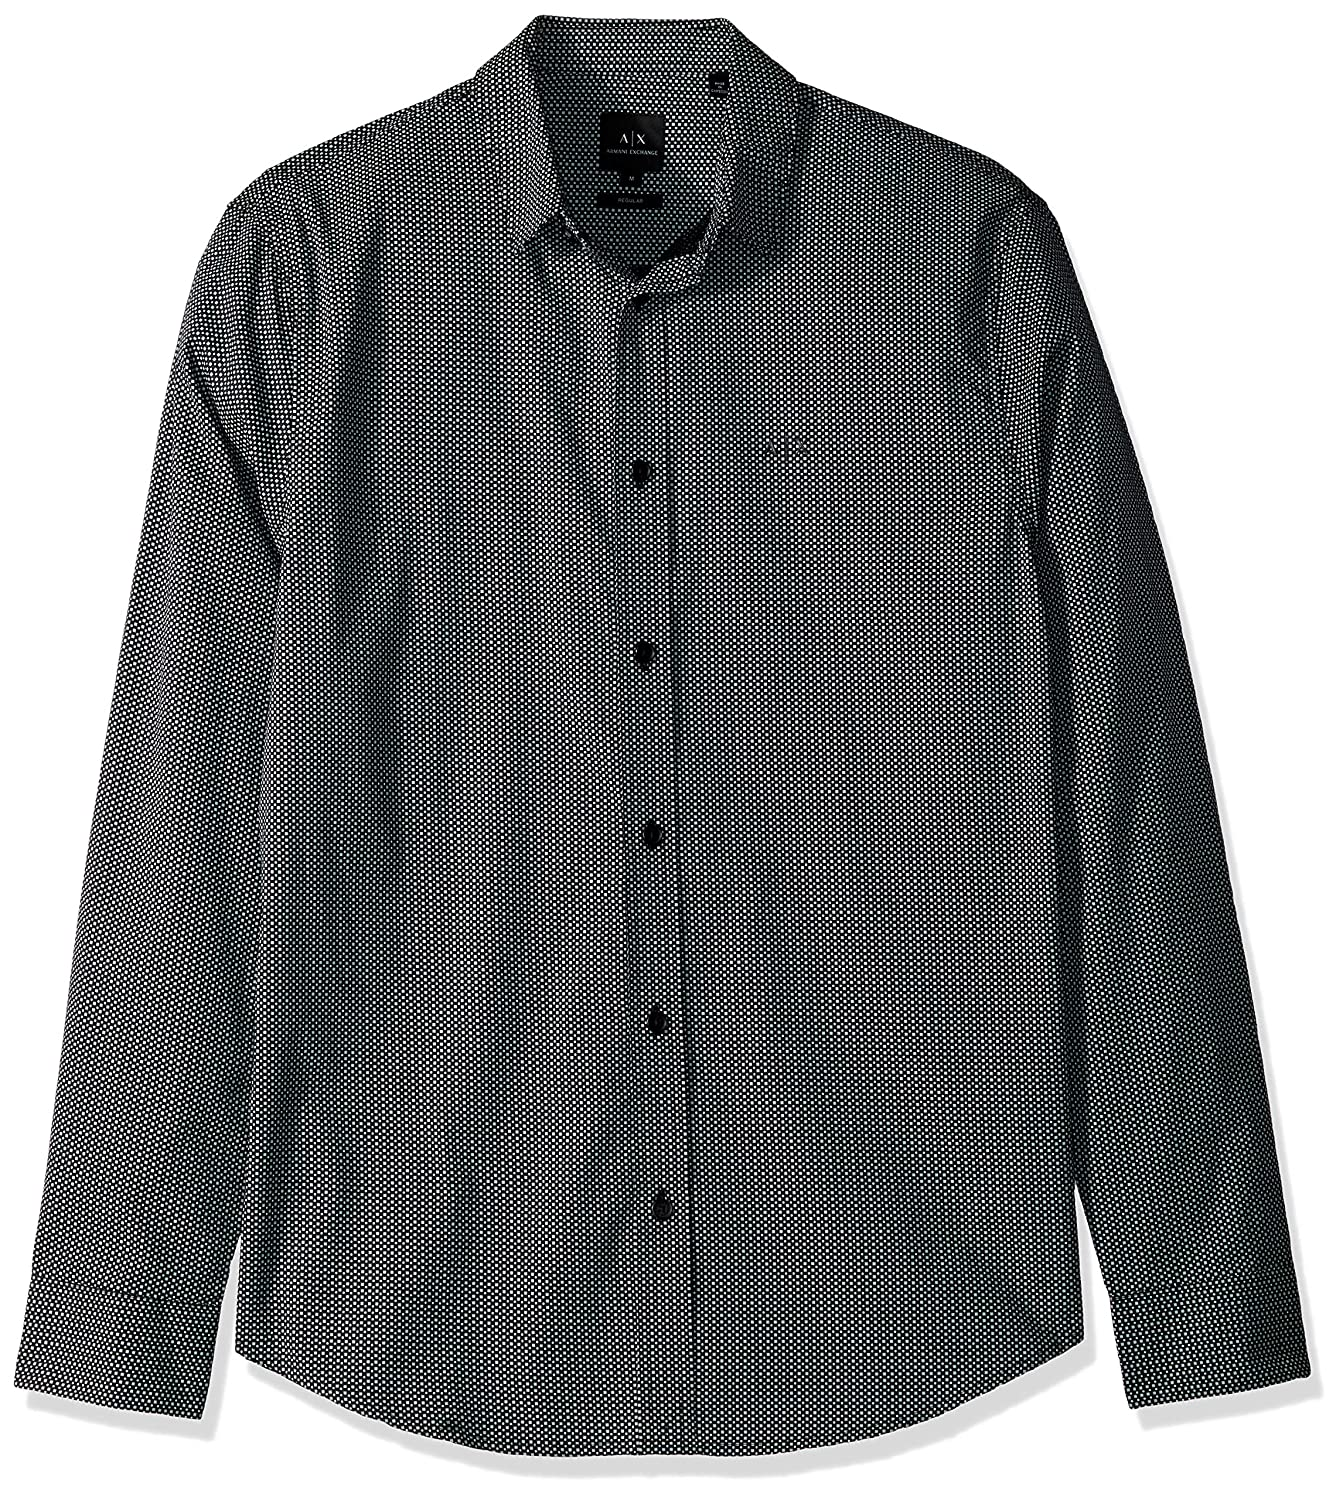 A X Arhommei Exchange Hommes's Patterned Long-Sleeve Cotton Button Down